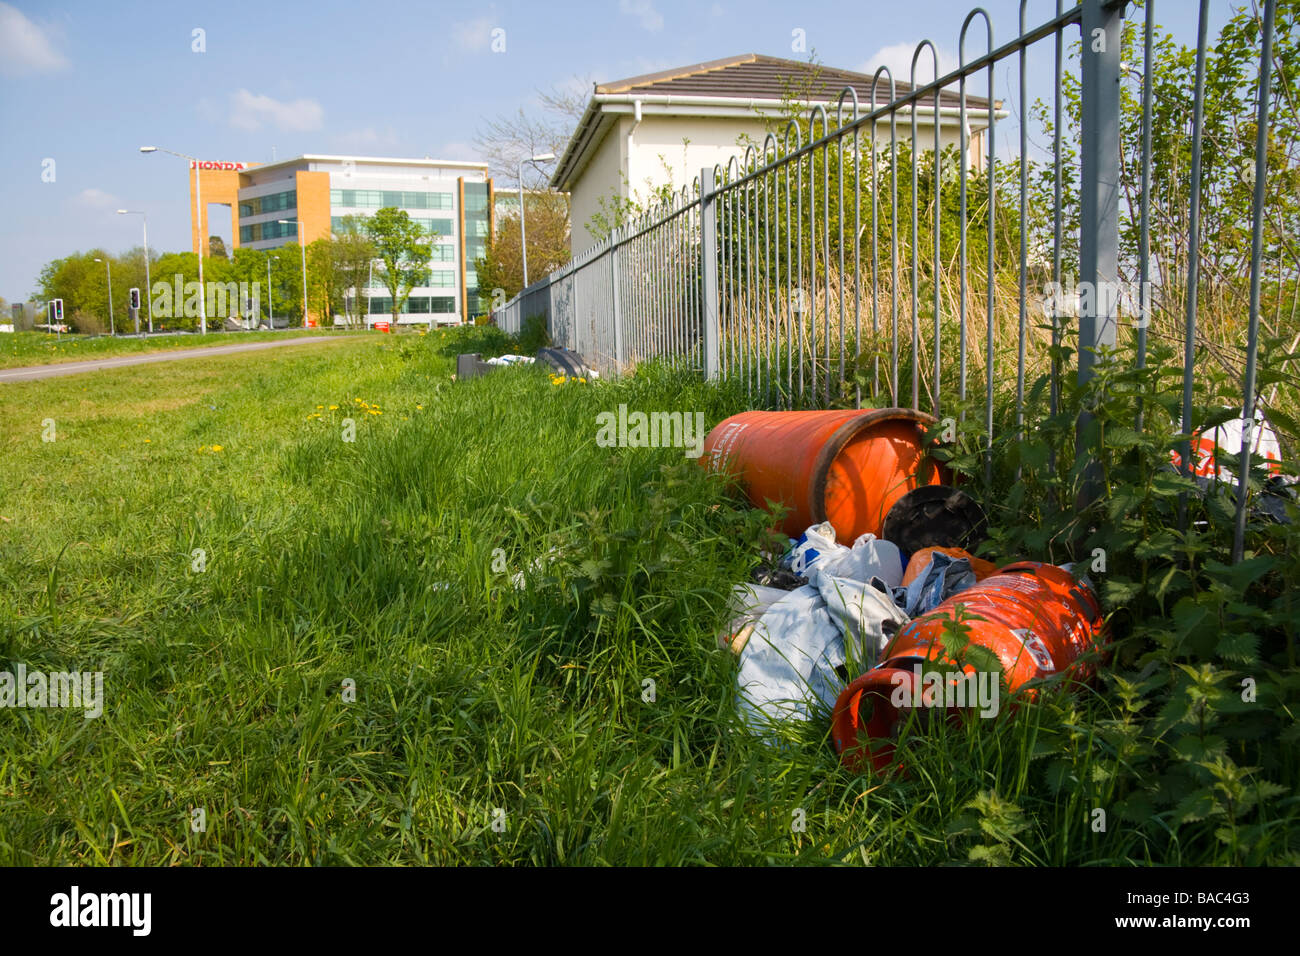 Rubbish and junk left by the side of a road in Berkshire UK - Stock Image